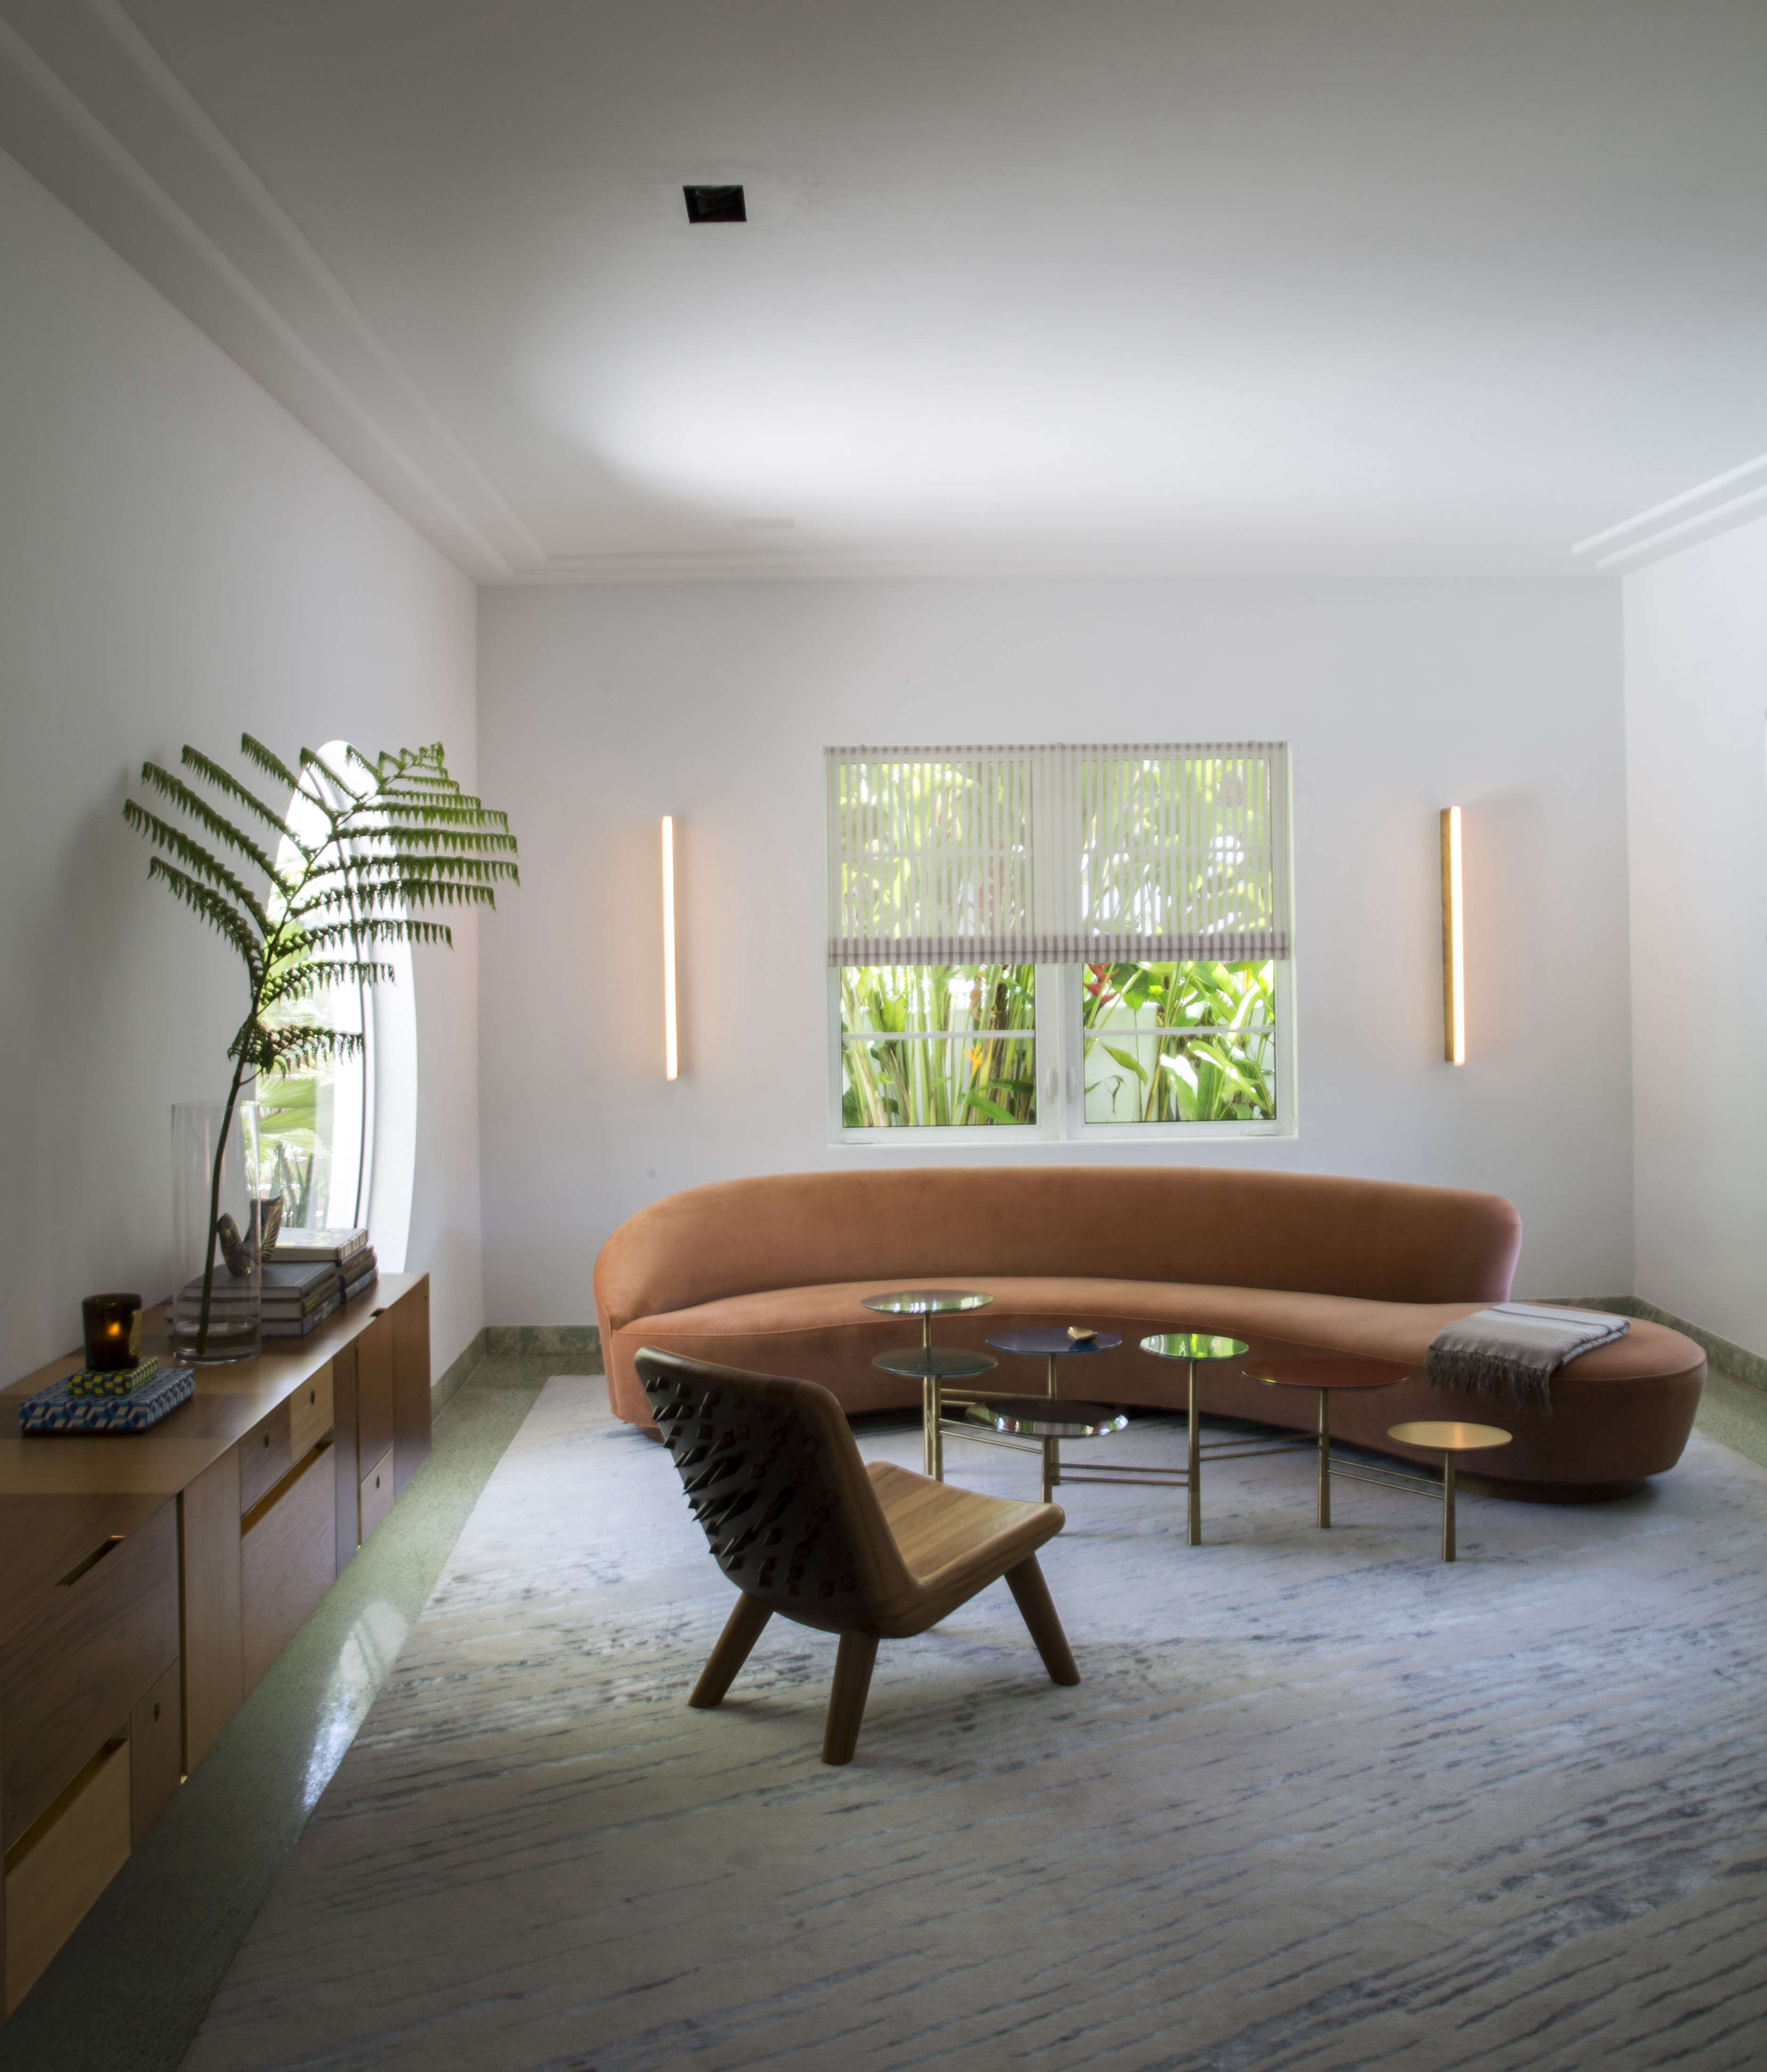 Living room with Vladimir Kagan sofa in Miami art deco villa remodel by Stephan Weishaupt, owner of Avenue Road, Max-Zambelli-photo   Remodelista